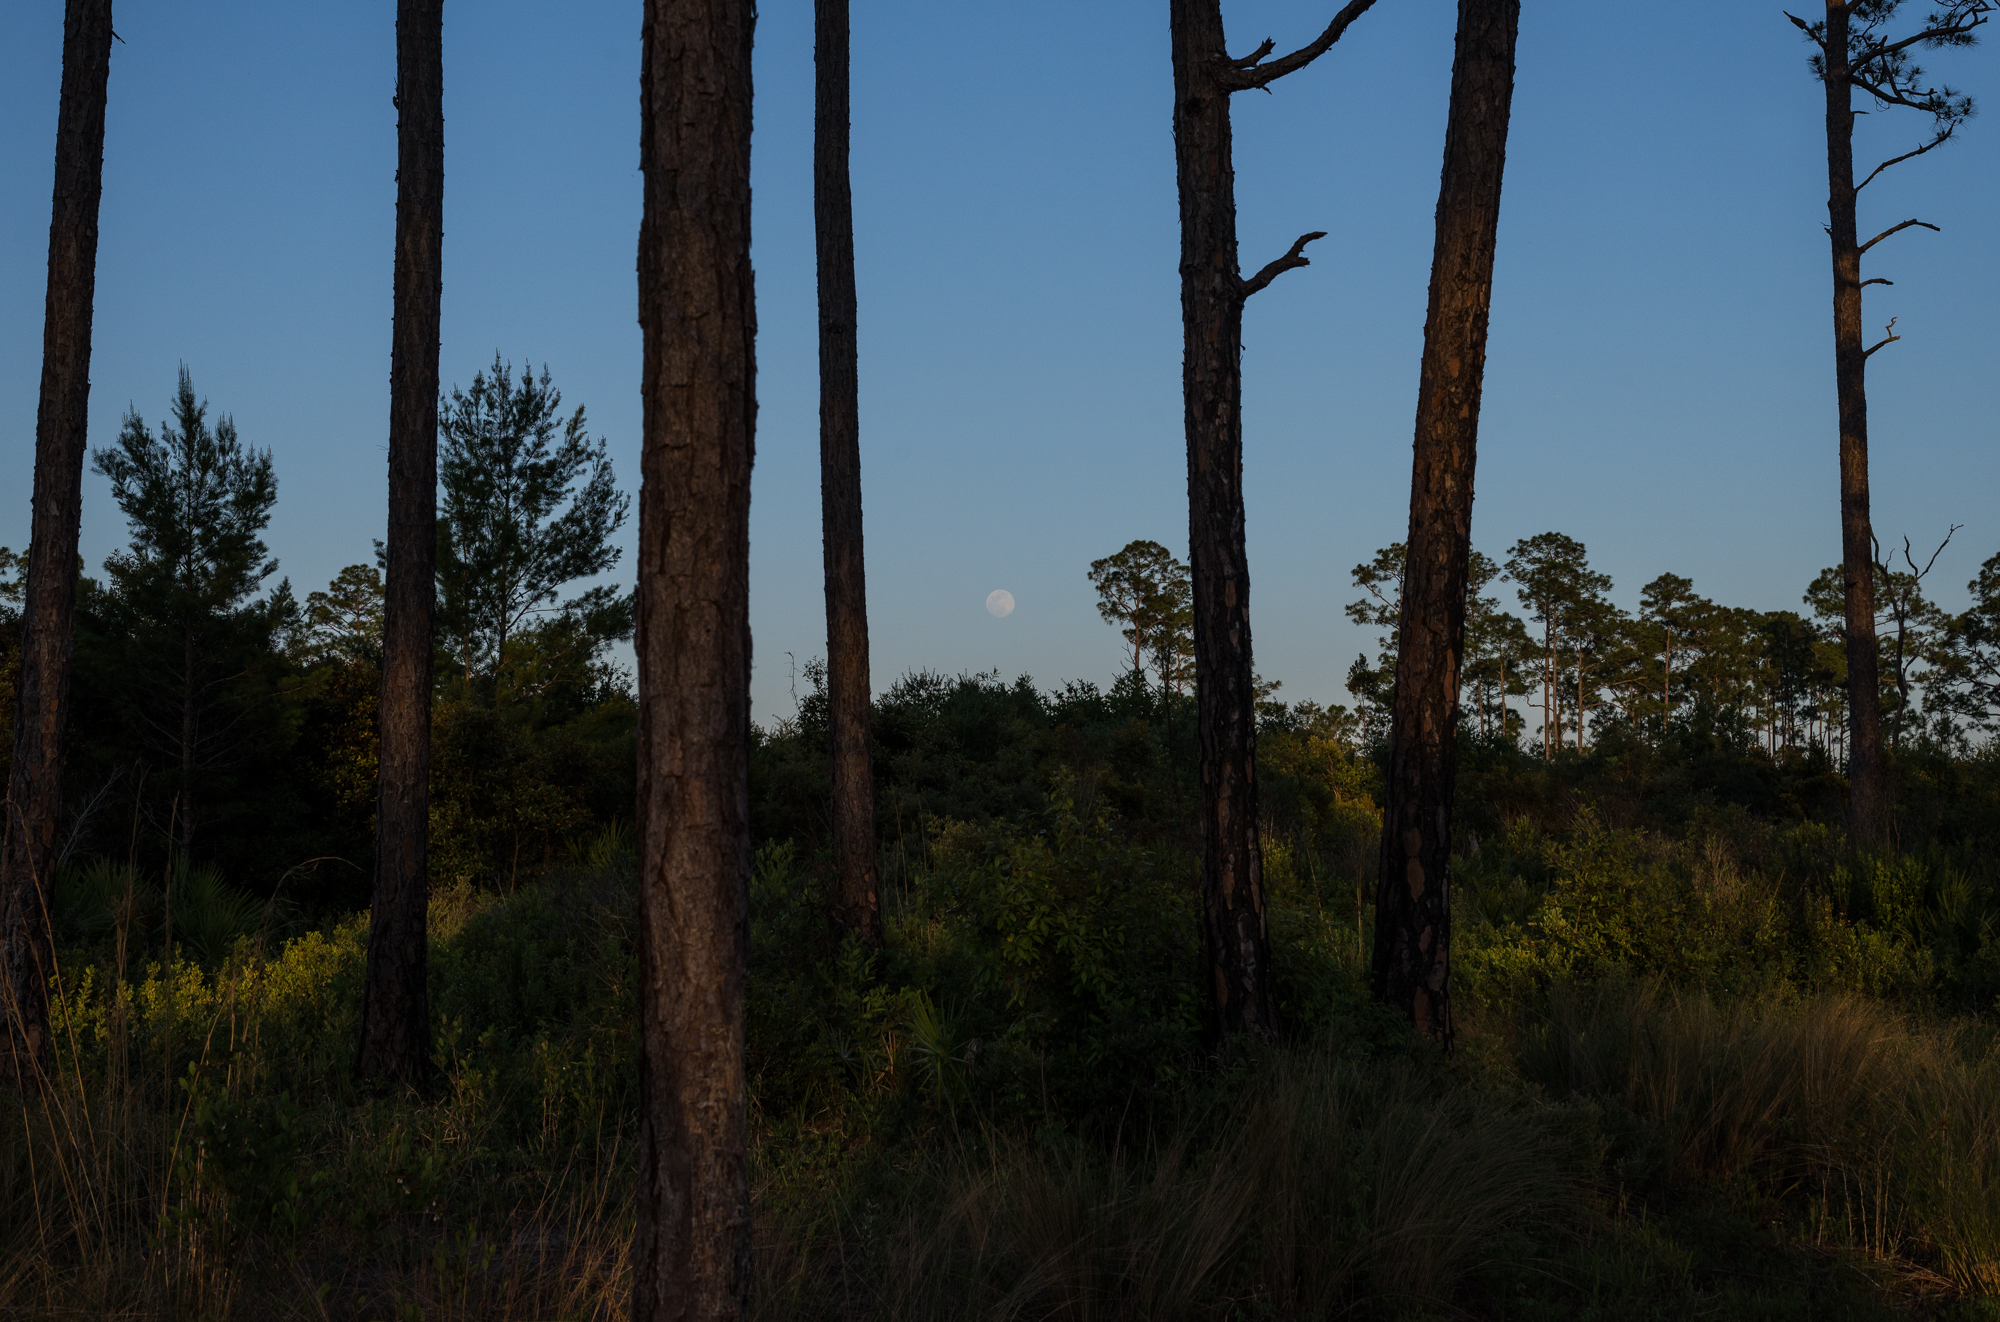 The moon rises over the Juniper Prairie Wilderness during our hike to the pond.